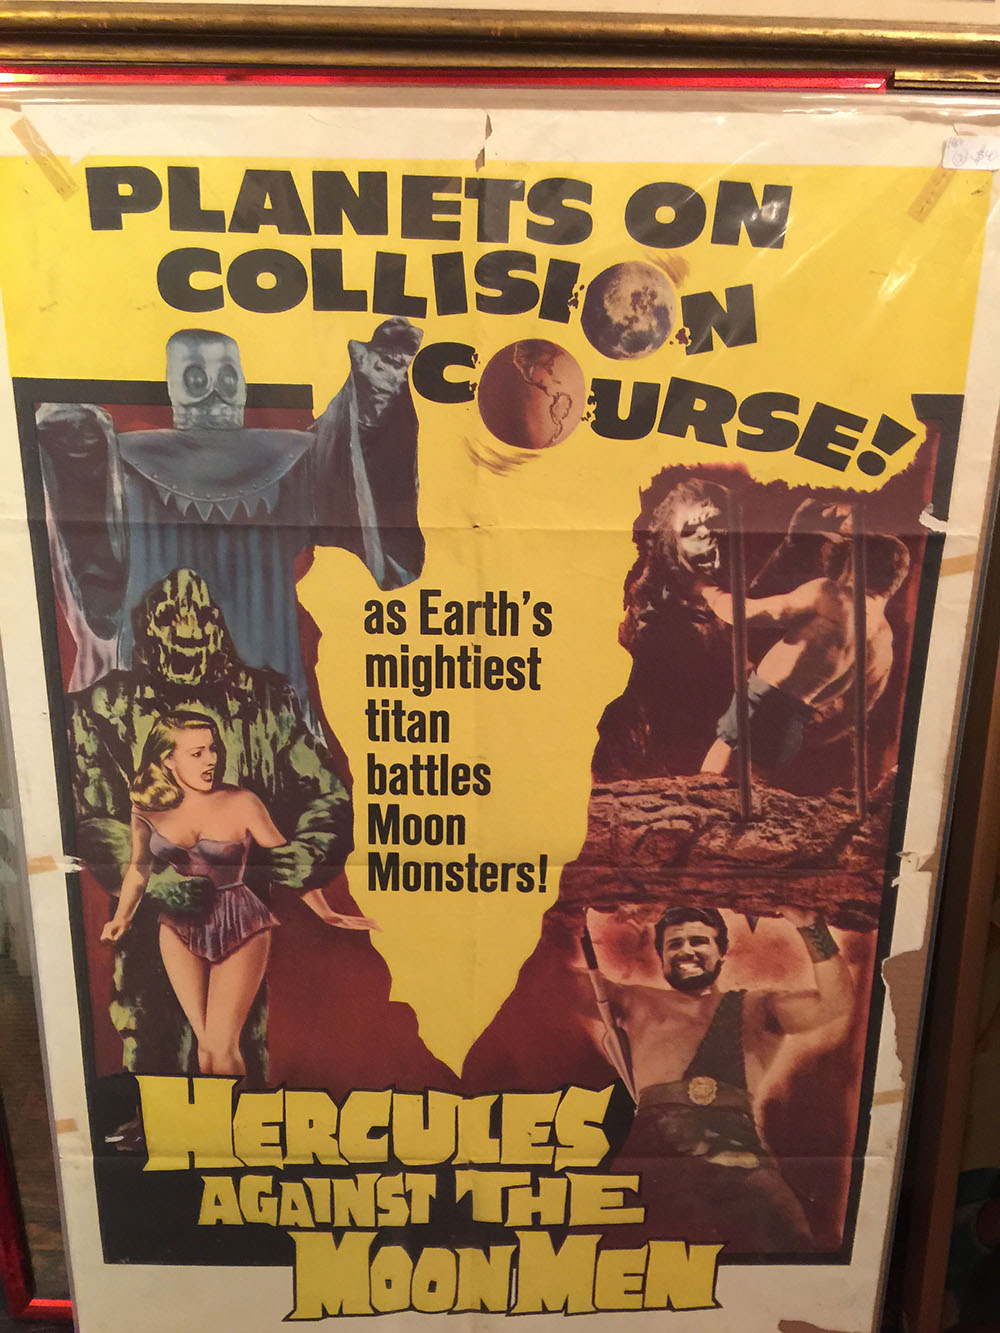 Hercules Againt The Moon Men